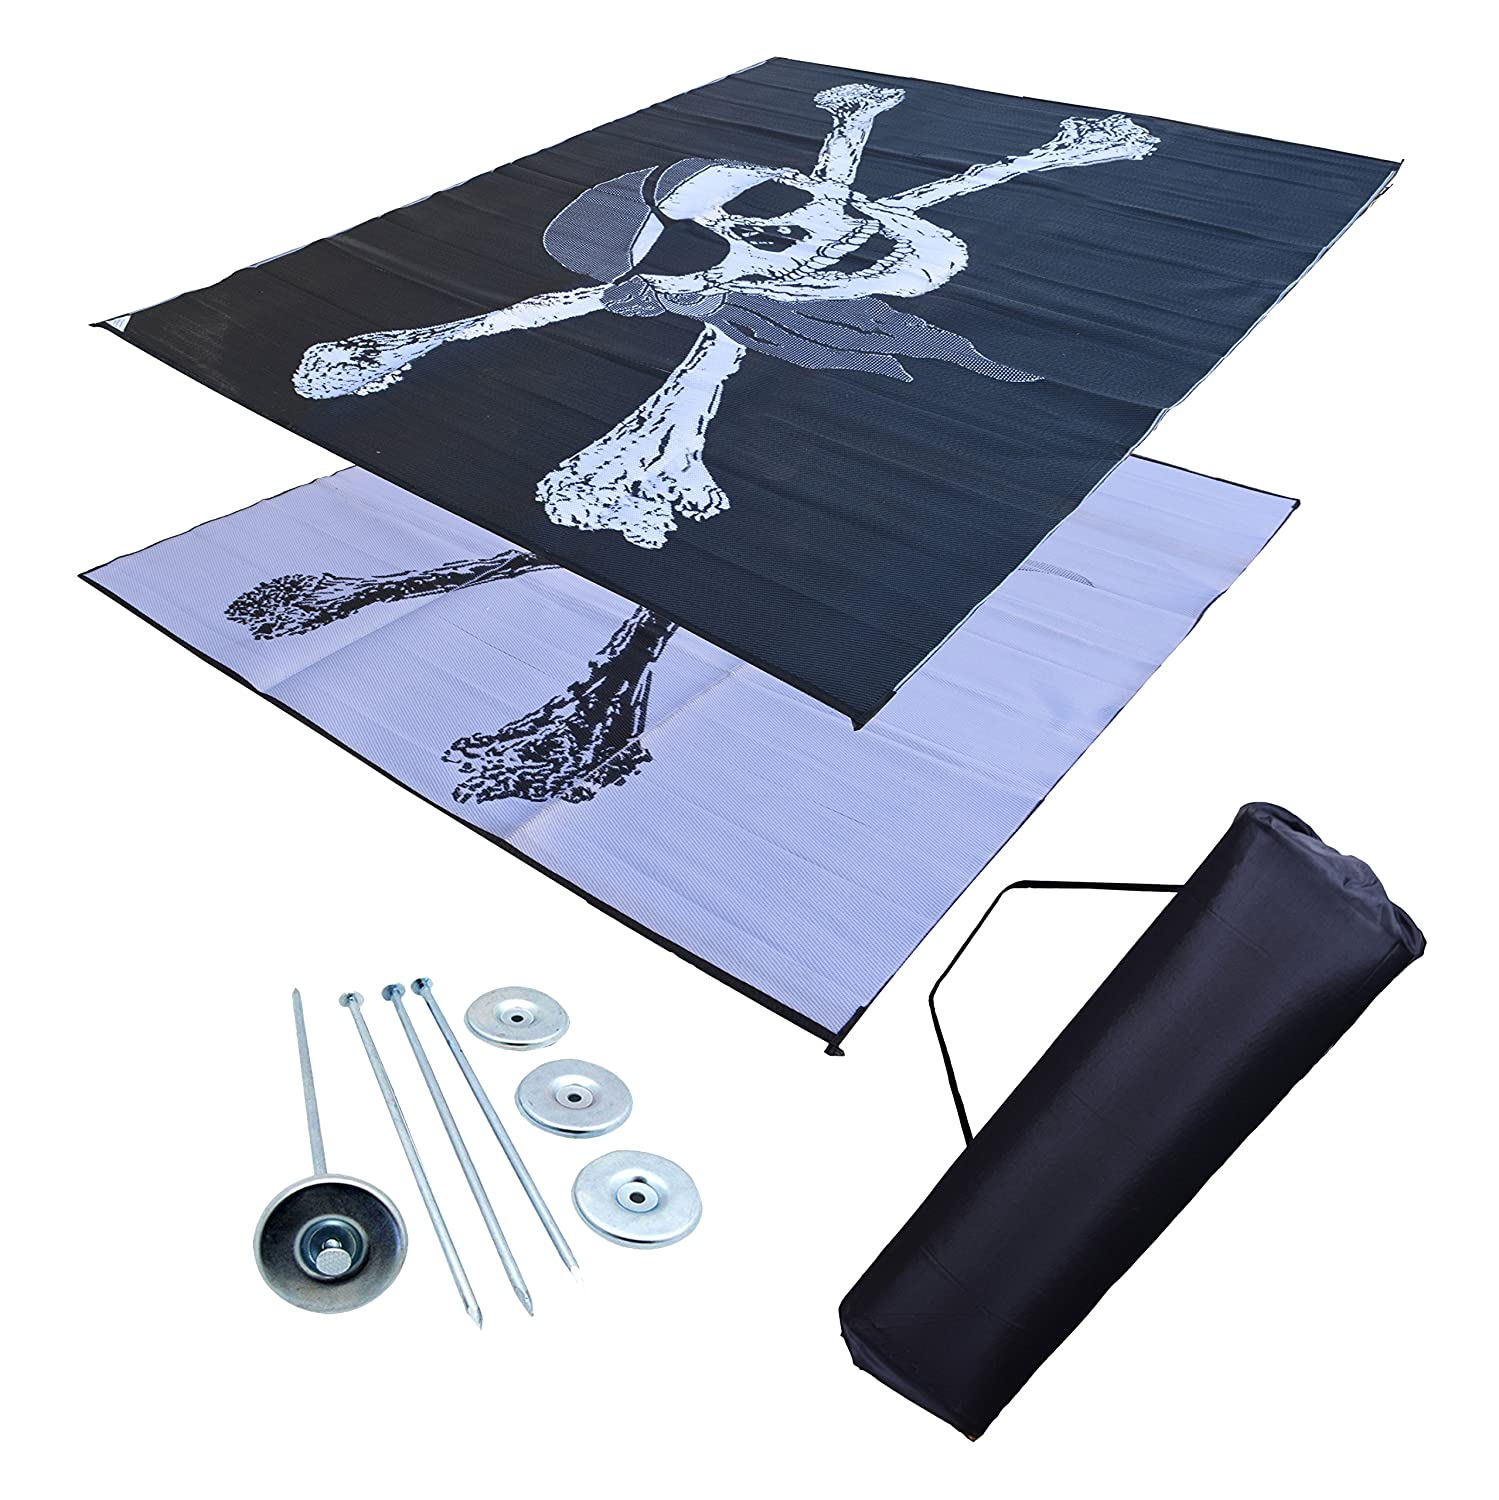 rv automotive complete leisure dp com pirate amazon patio kit flag awning mat outdoor